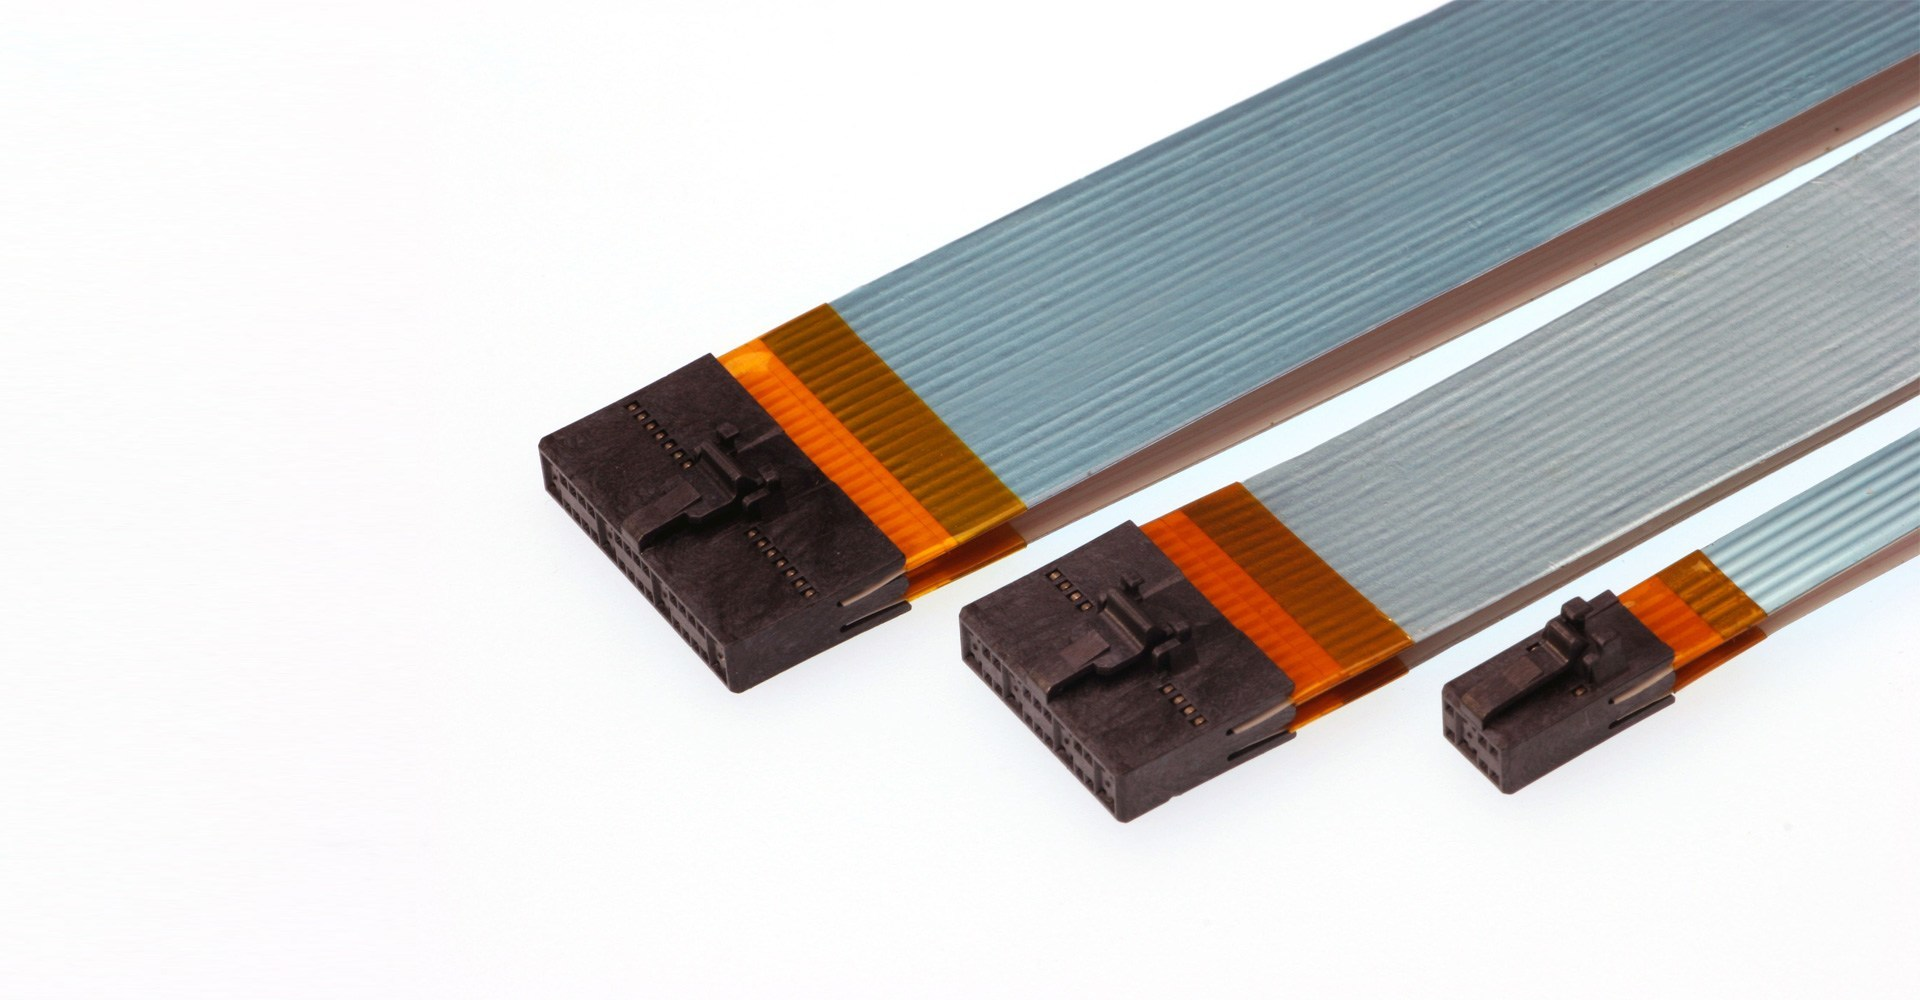 Flat Flex Cable Connector : Ffc flat flexible cable lorom